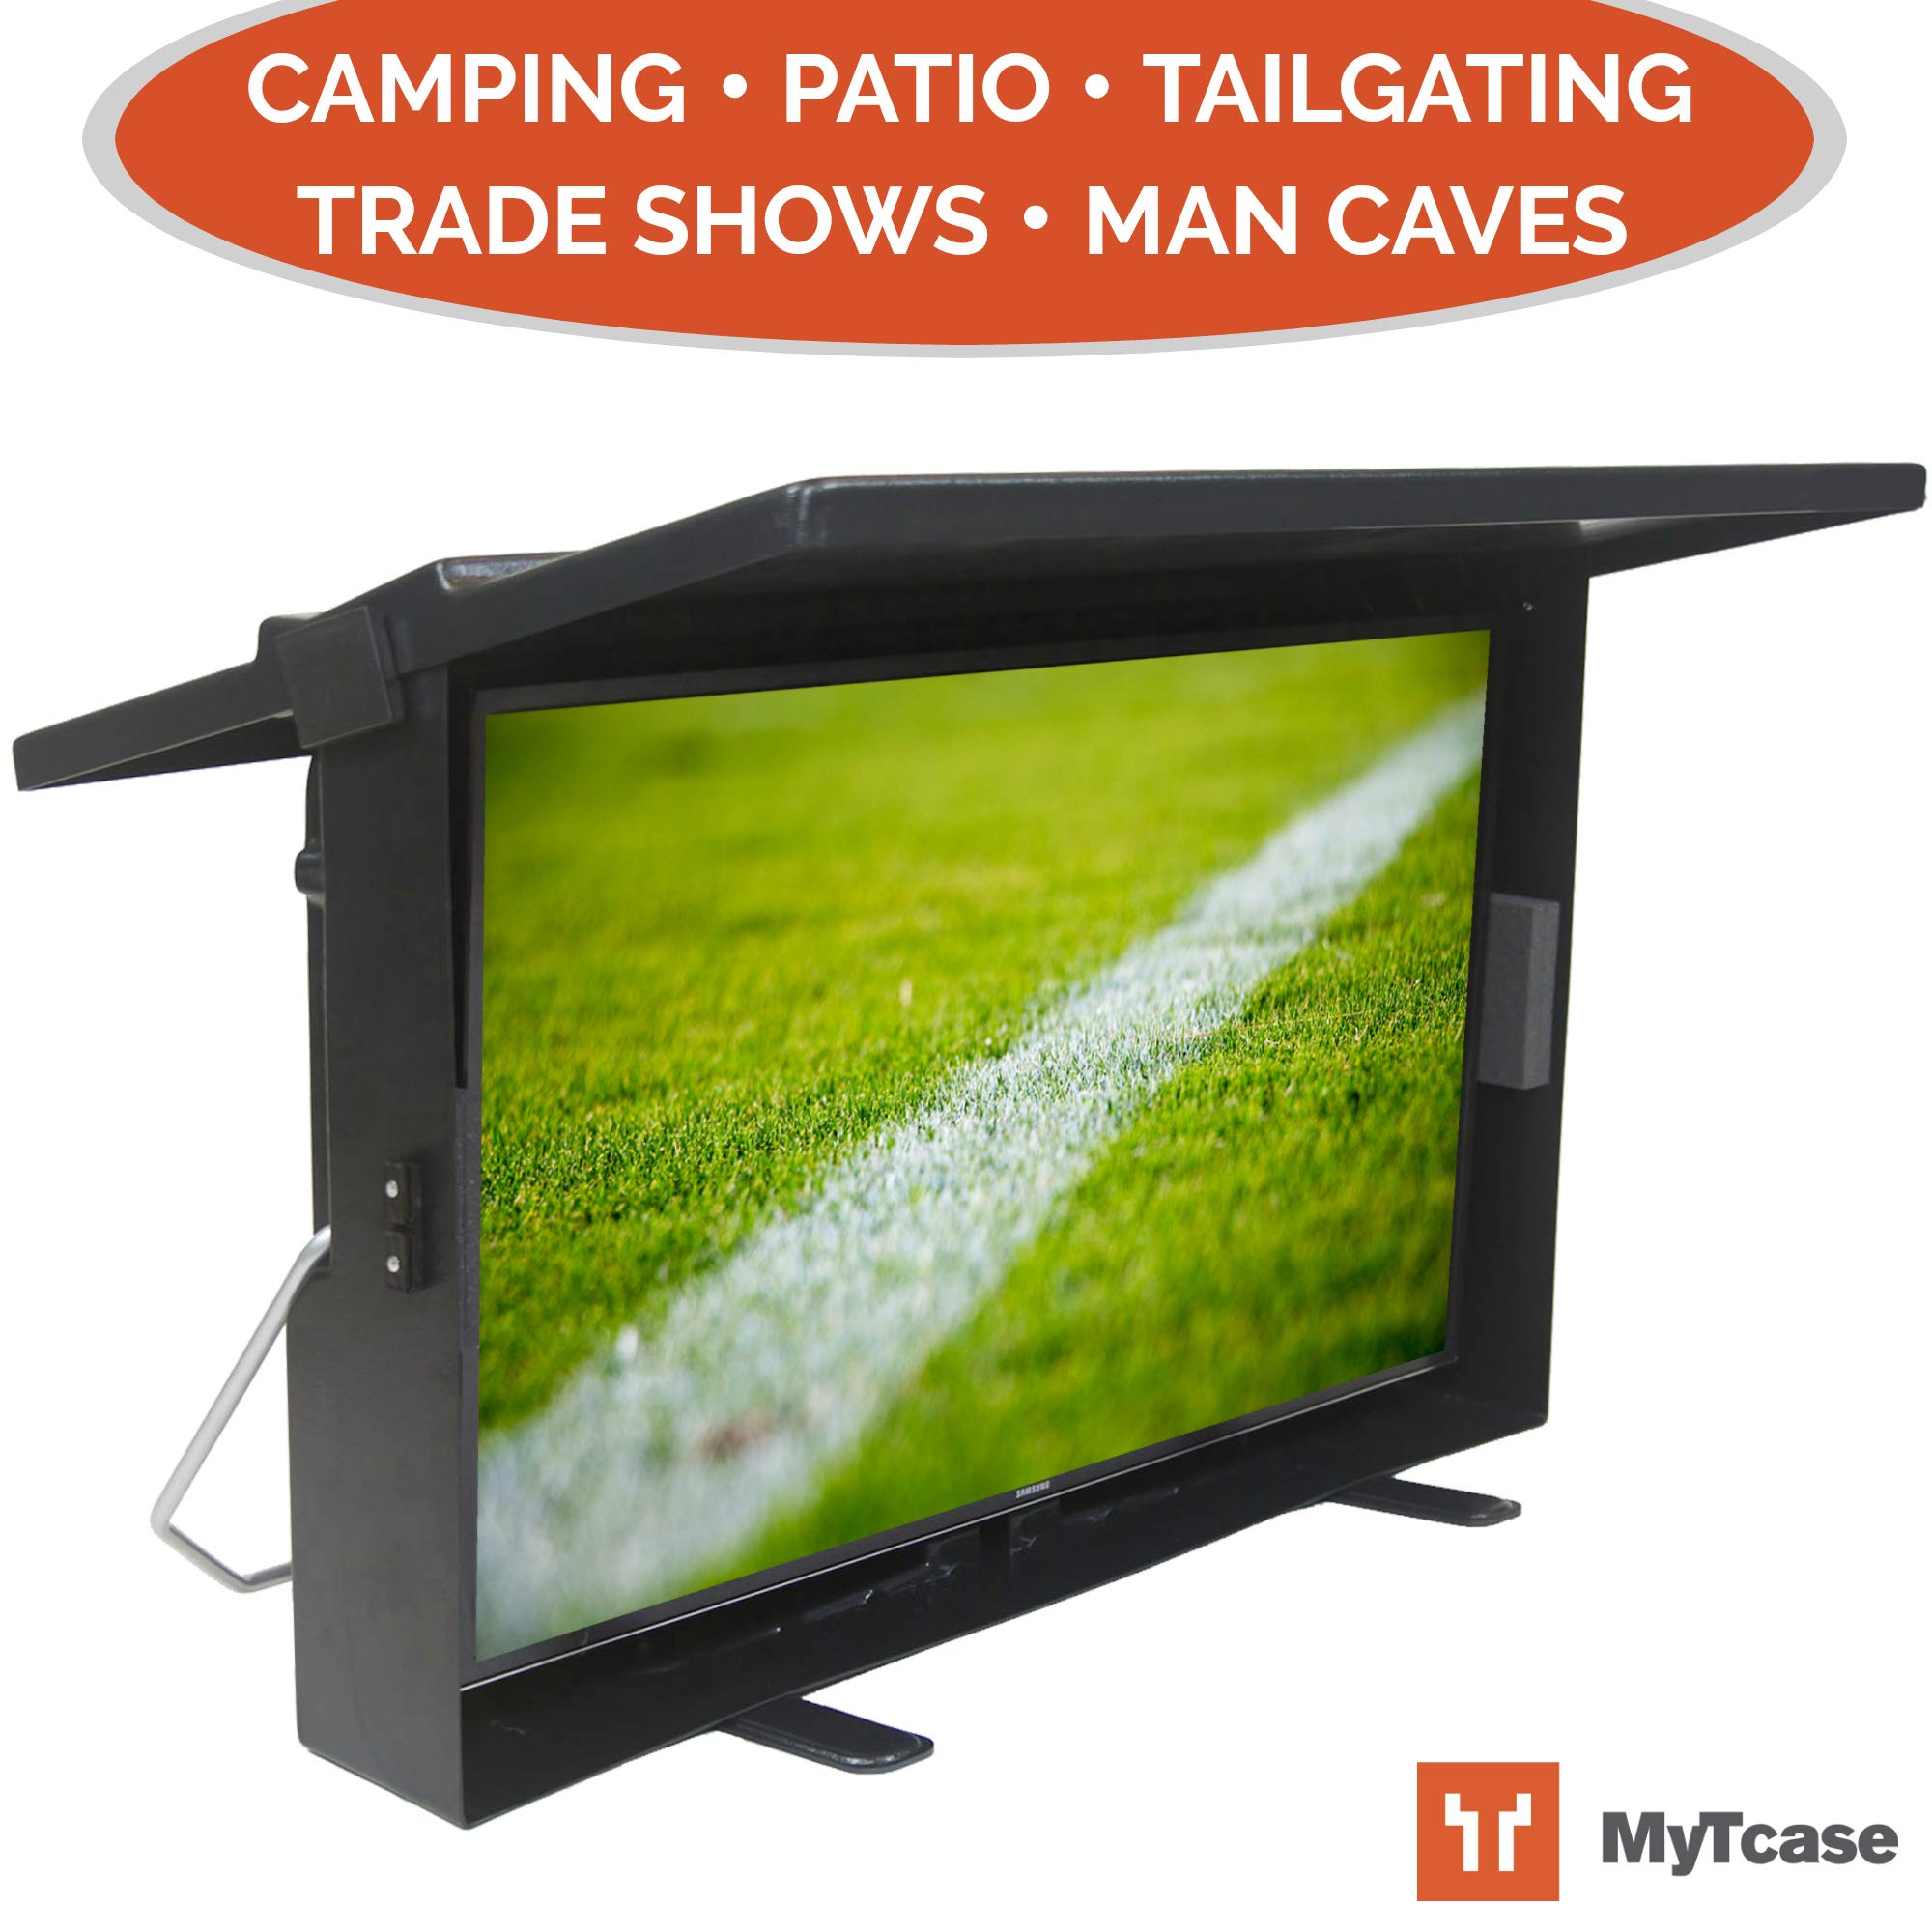 MYTCASE: Protective TV Carrying Case for Tailgating, Camping, Backyard BBQ, and Travel - Transport + Secure + Display Your LED TV, Black by MYTCASE